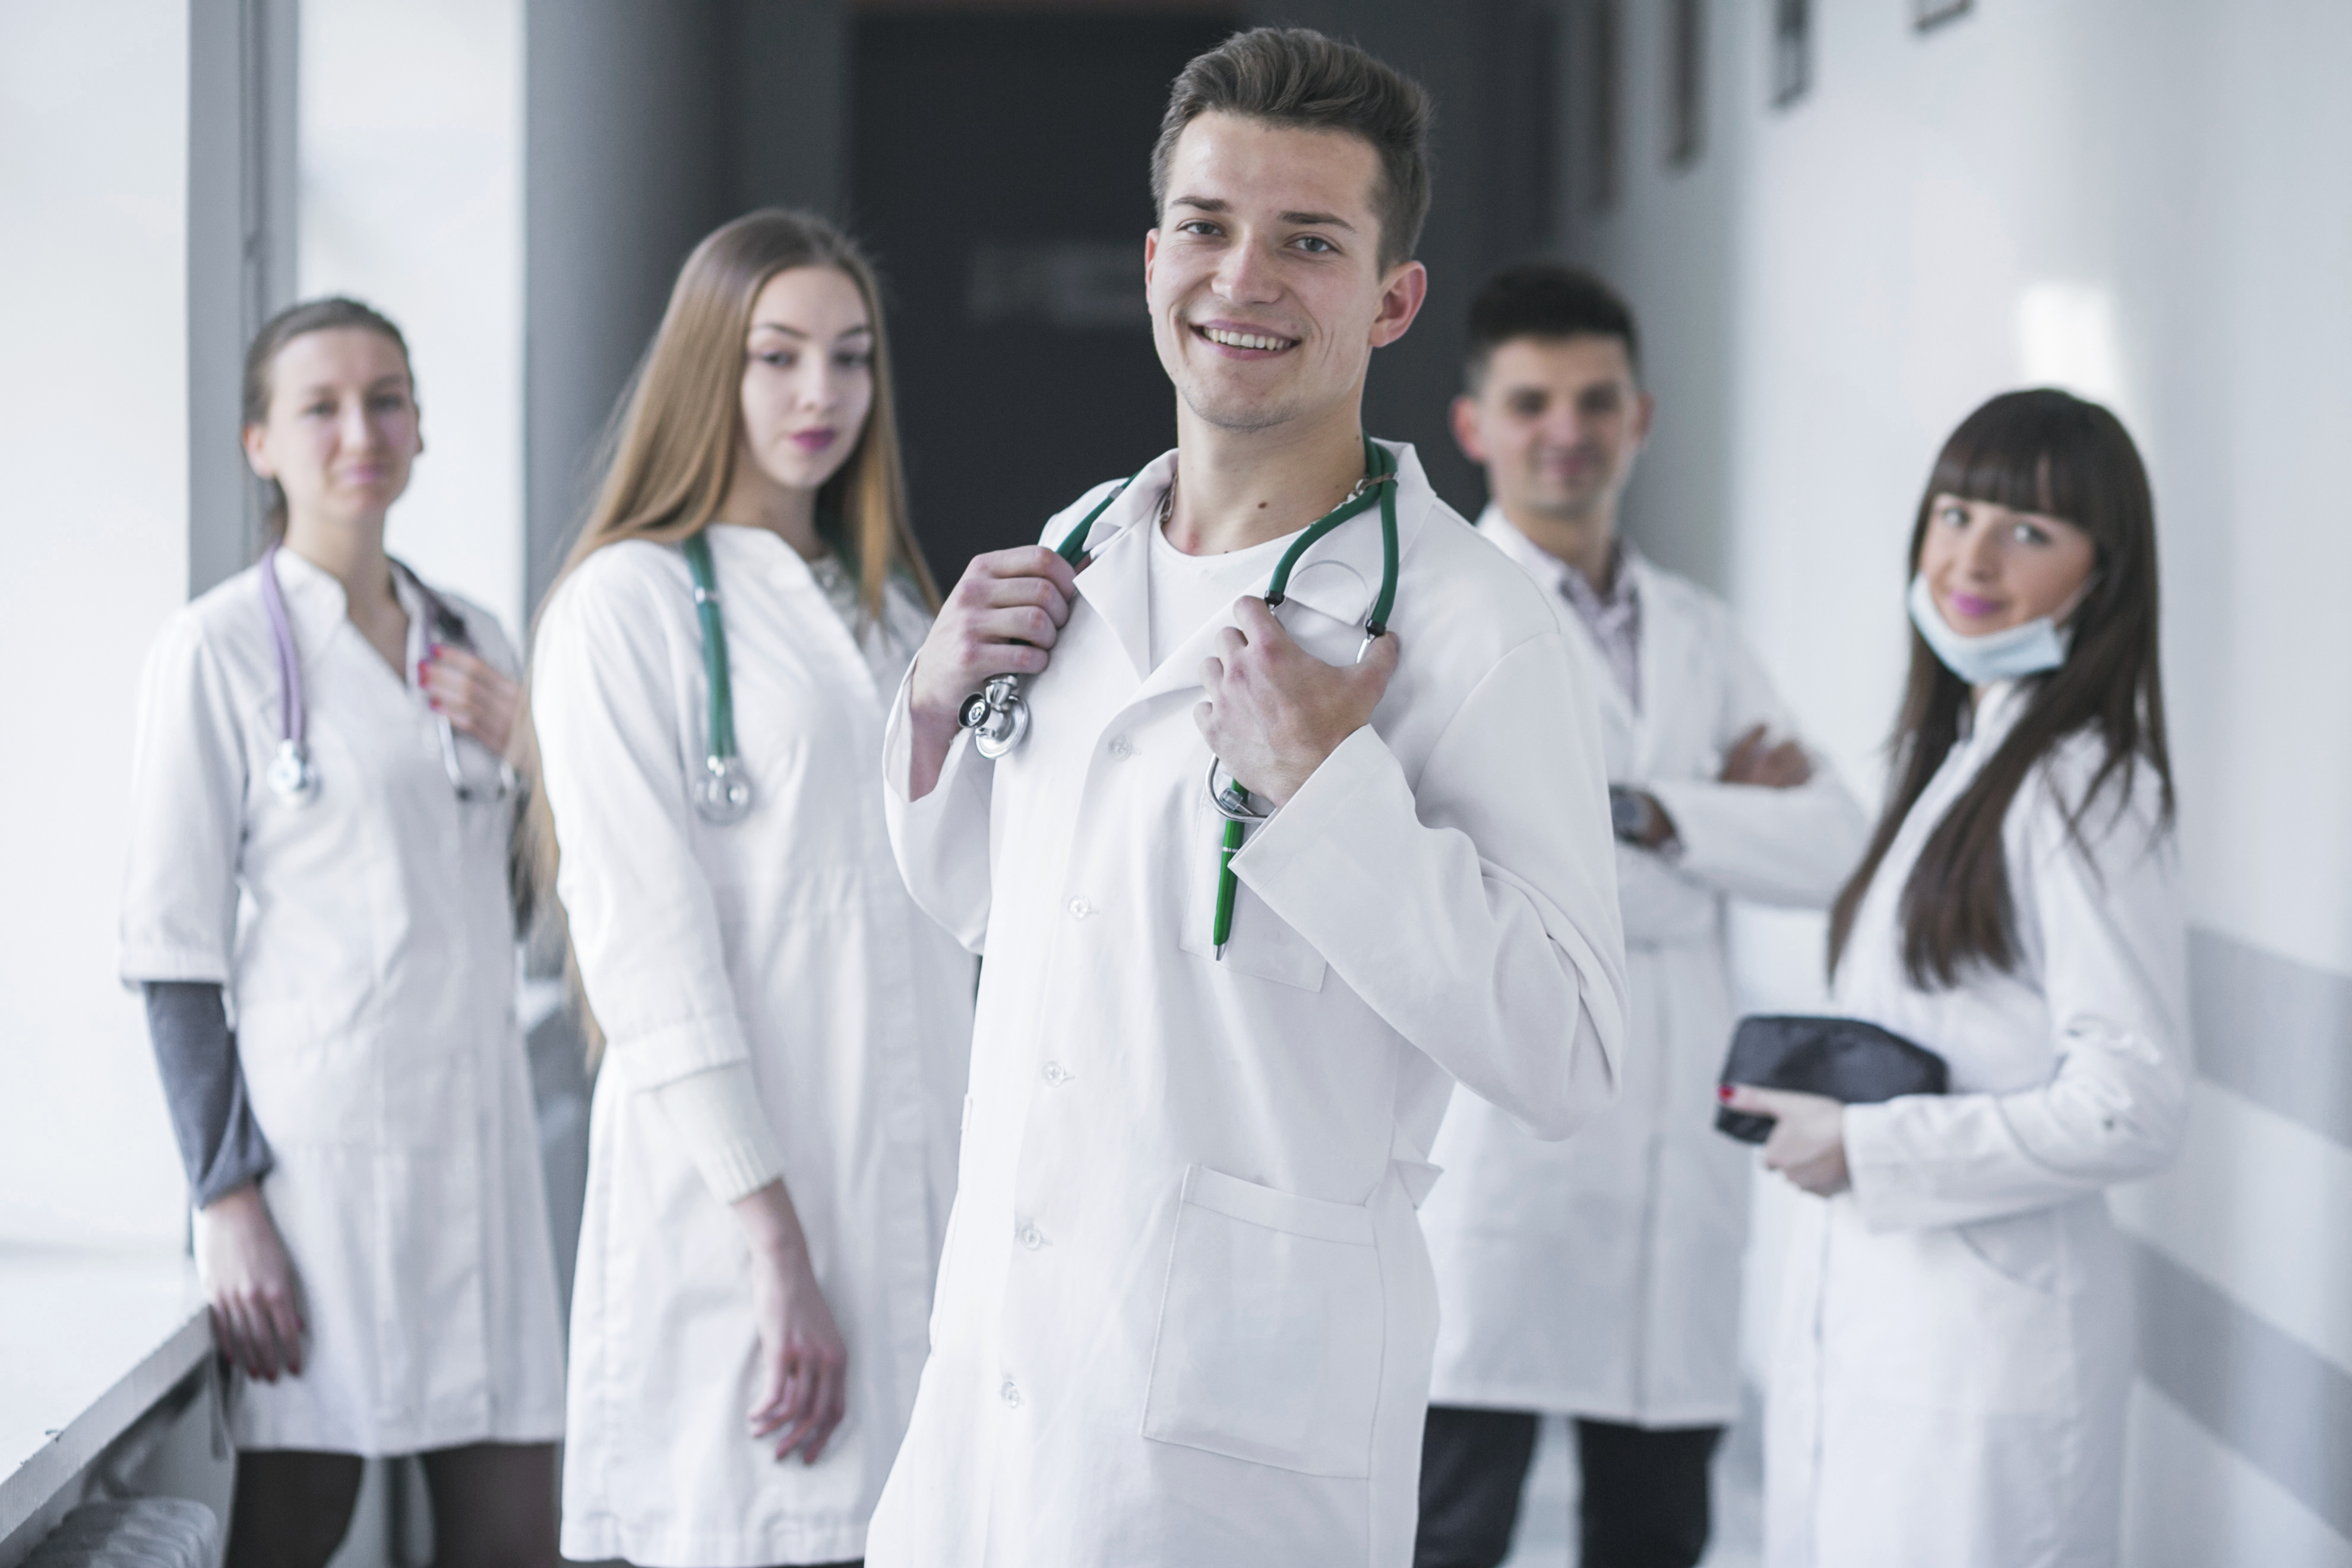 doctor-white-coat-uniform-service-girl-physician-medicine-researcher-health-care-1446783